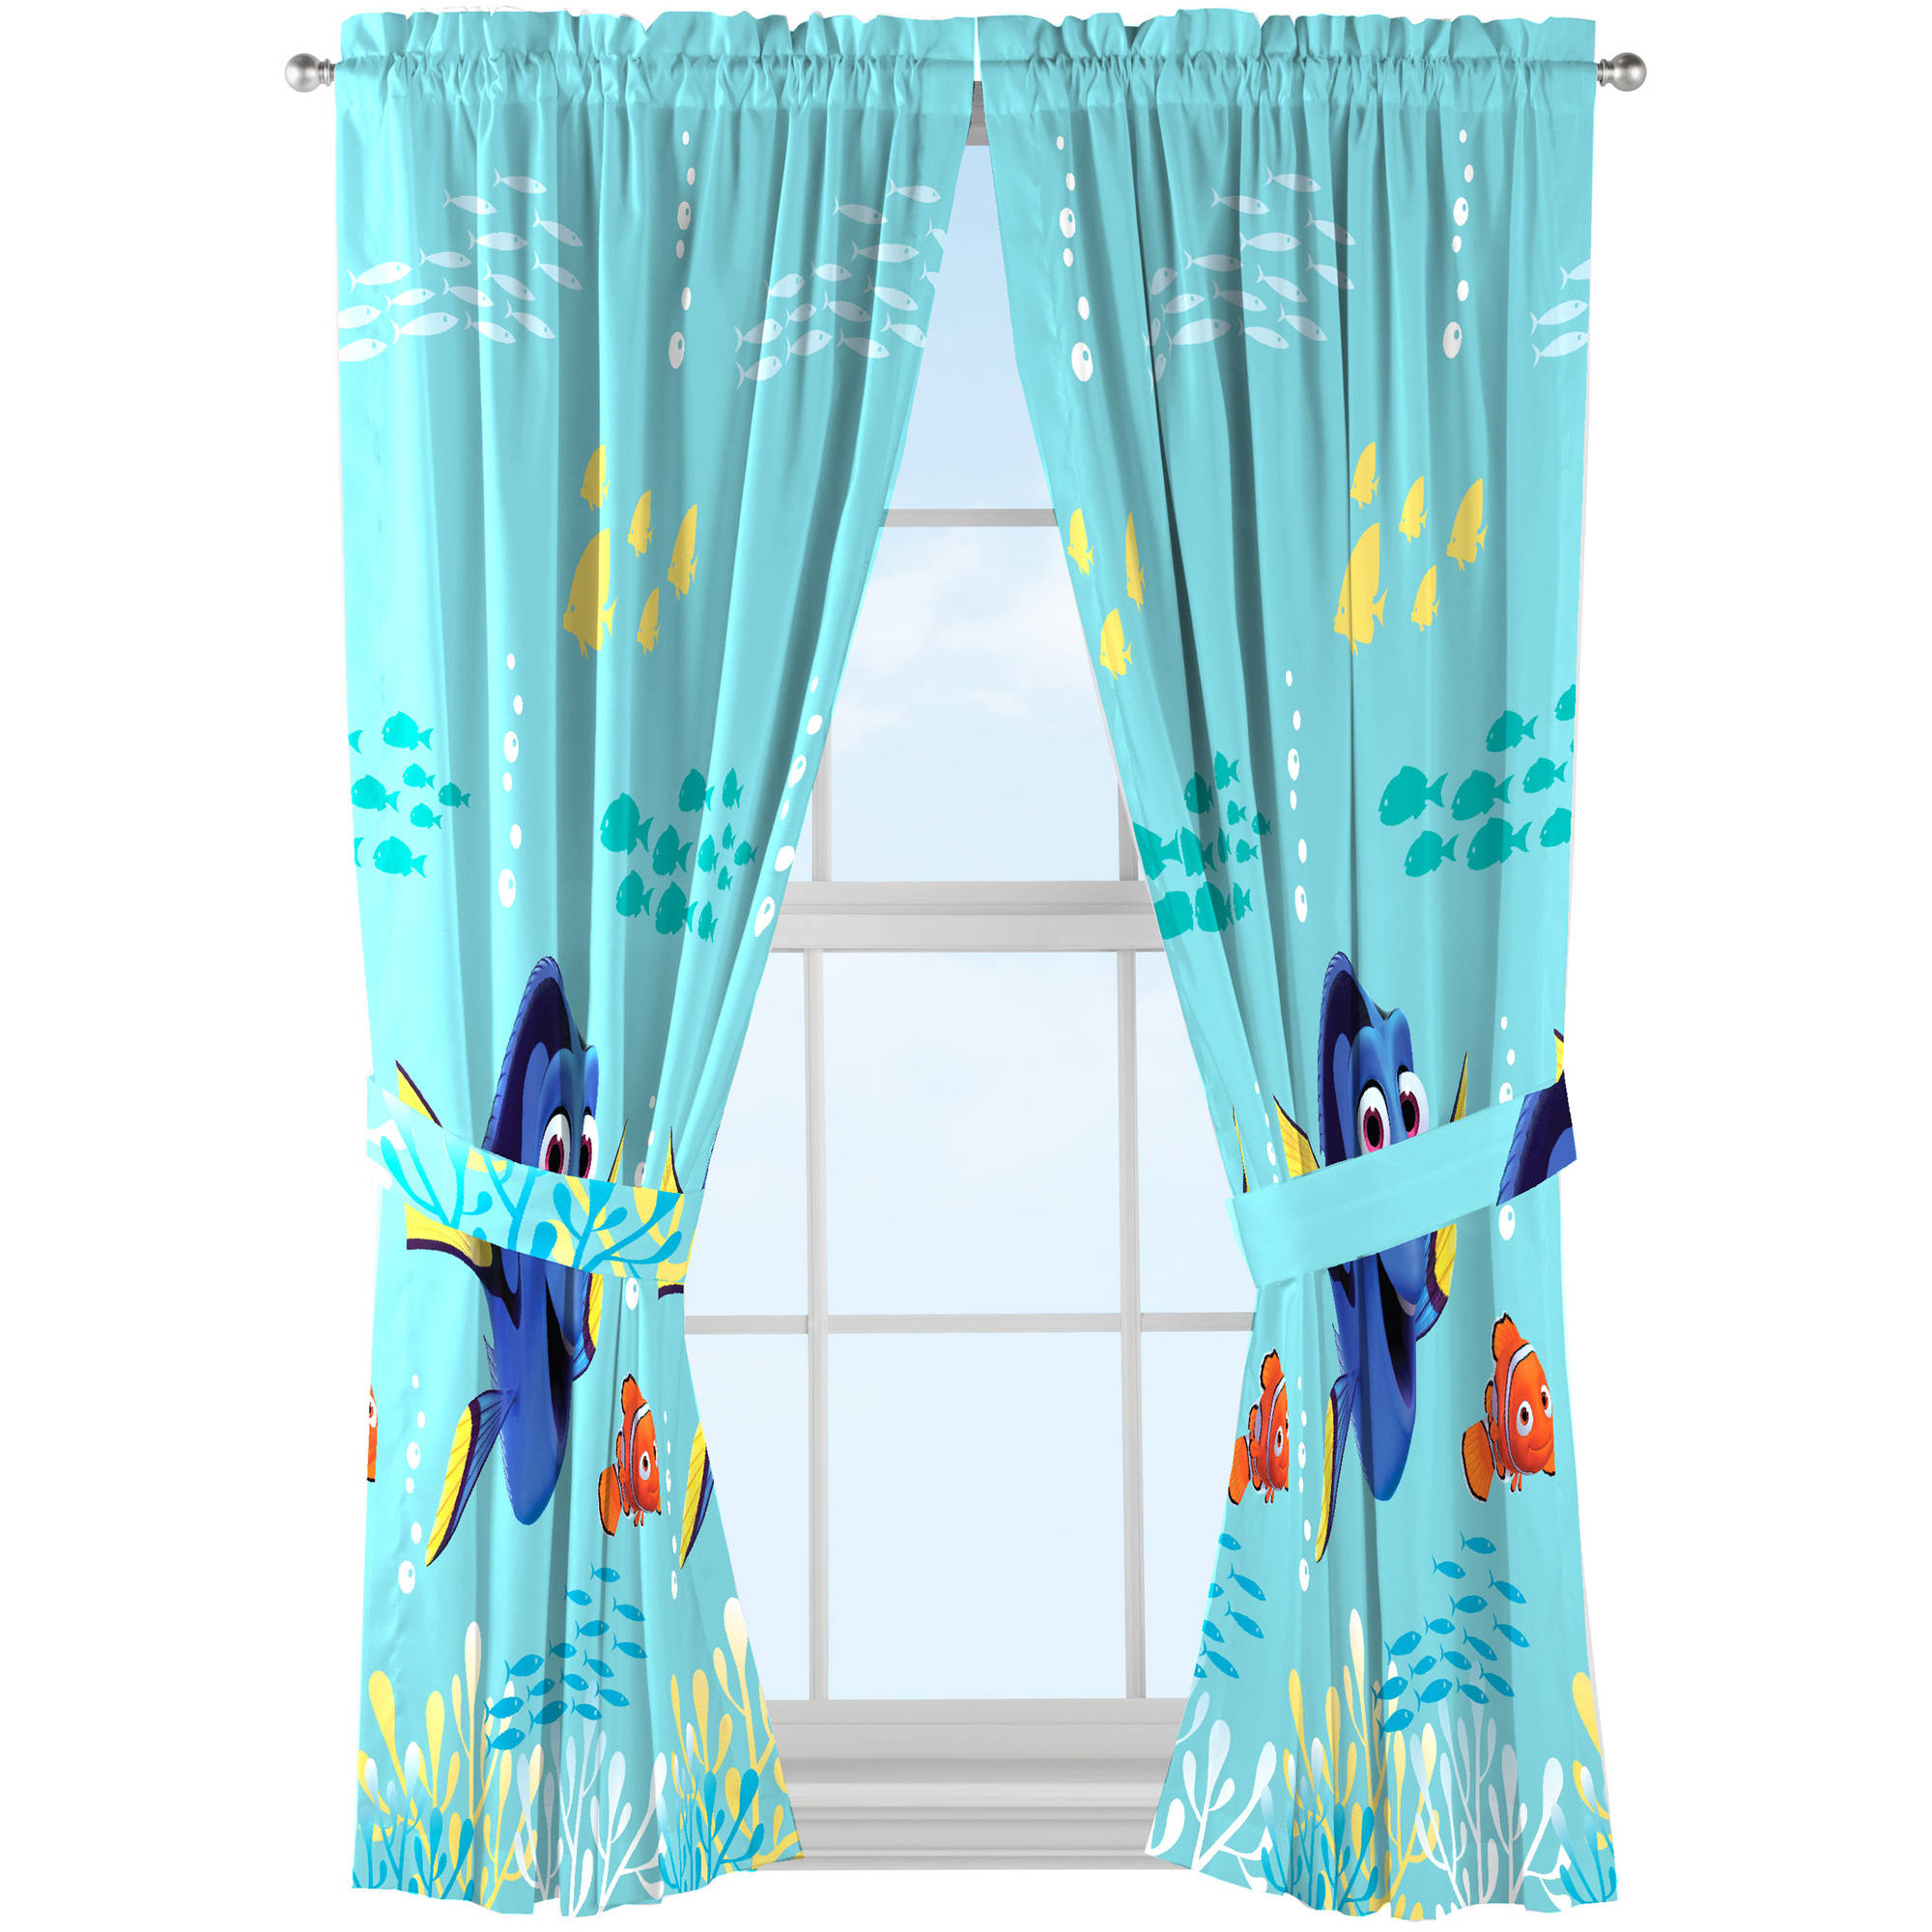 Disney Finding Dory Kids Bedroom Curtains Set of 9 - Walmart.com